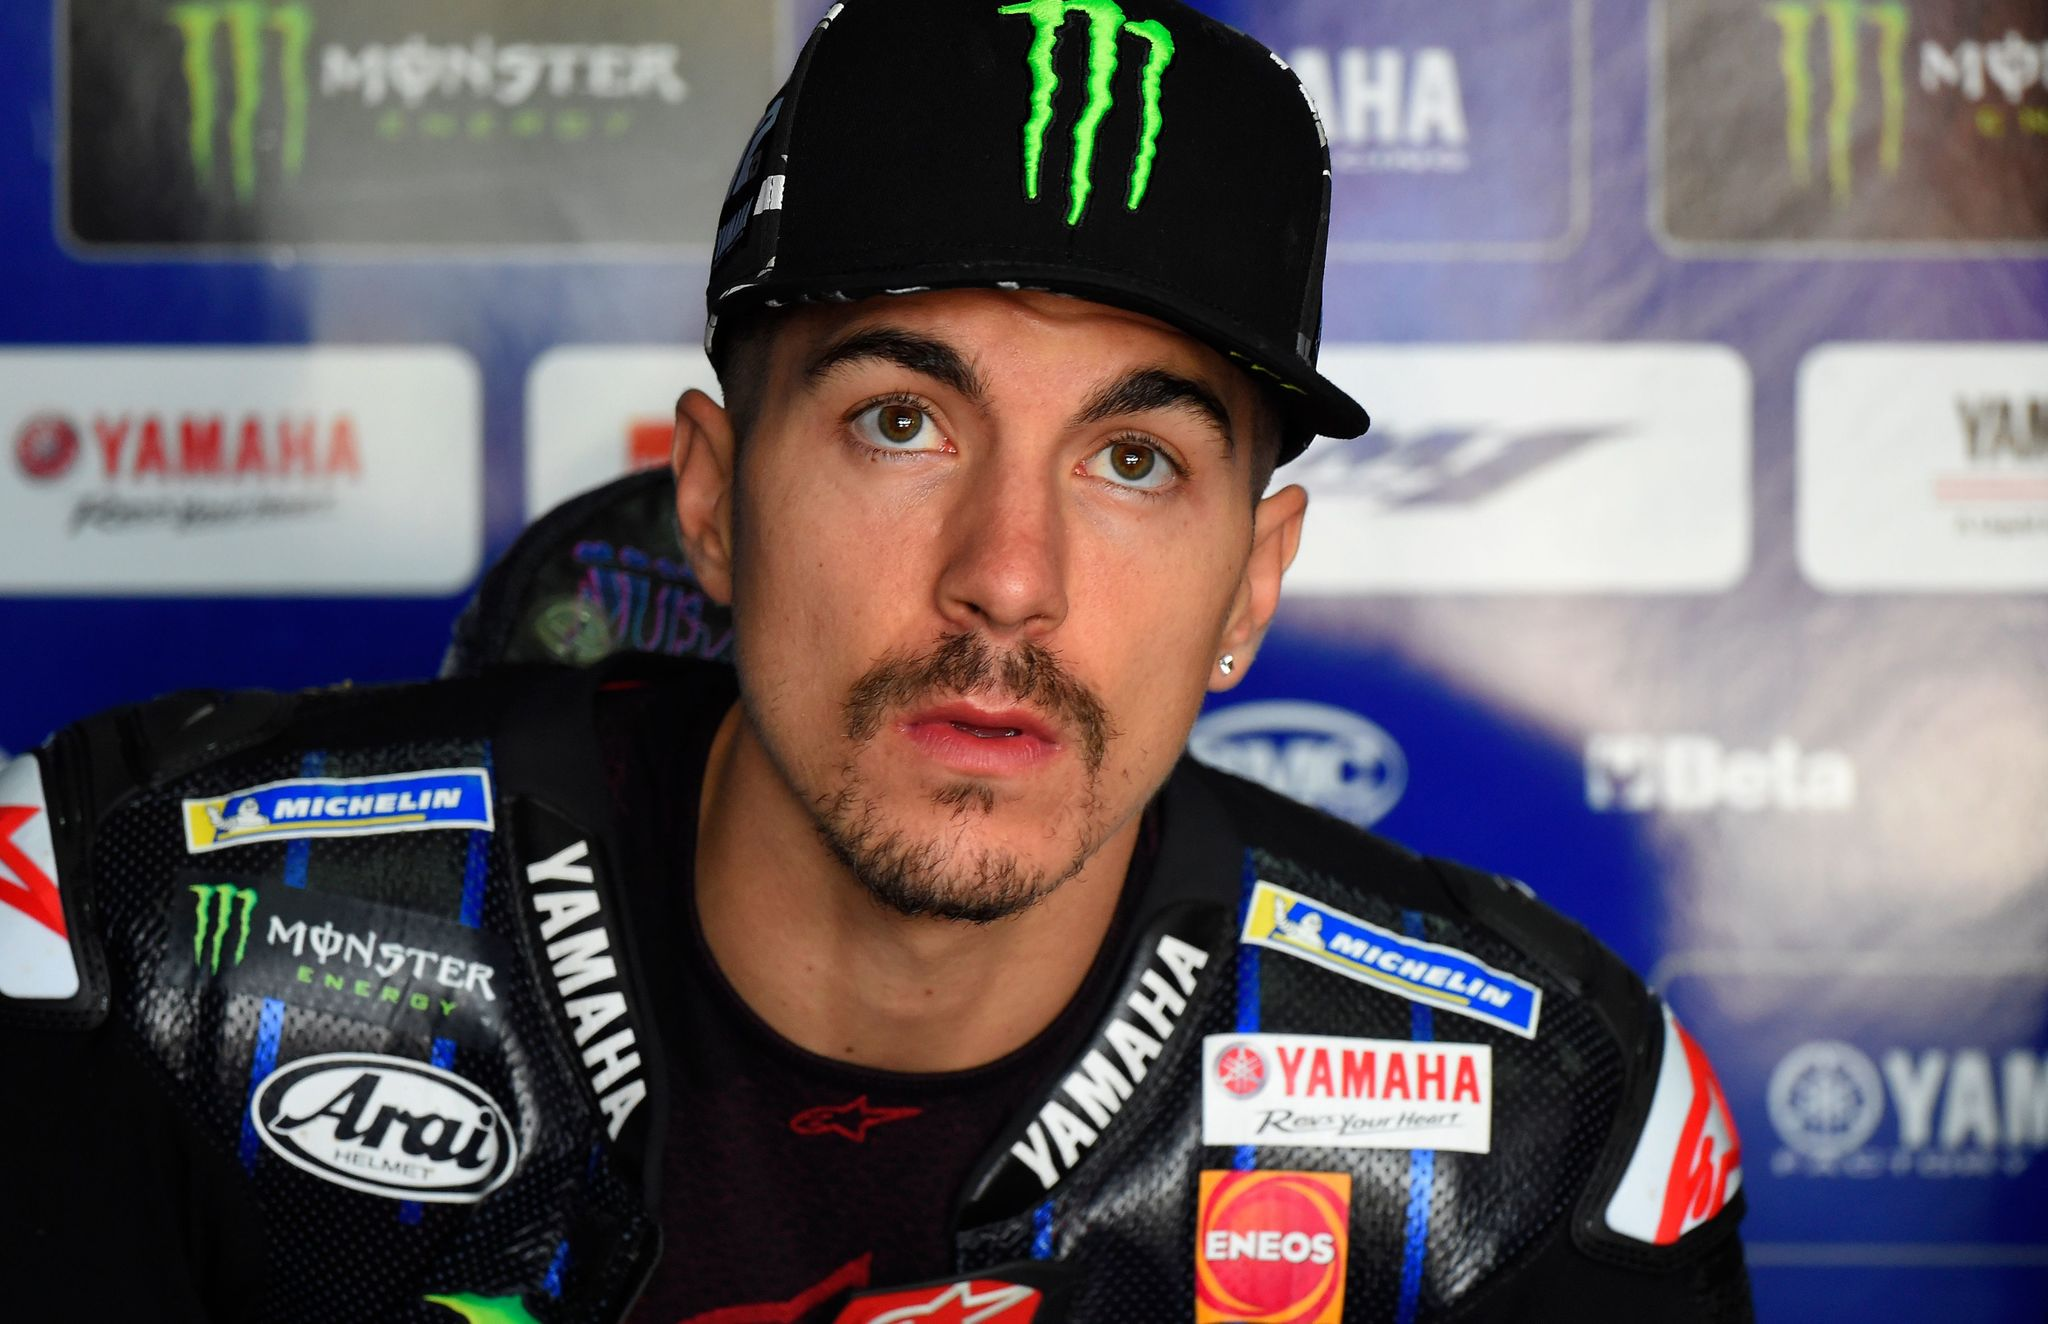 Monster Energy Yamaha Spanish rider Maverick <HIT>Vinales</HIT> looks on during the first MotoGP free practice session of the Moto Grand Prix of Aragon at the Motorland circuit in Alcaniz on September 20, 2019. (Photo by JOSE JORDAN / AFP)